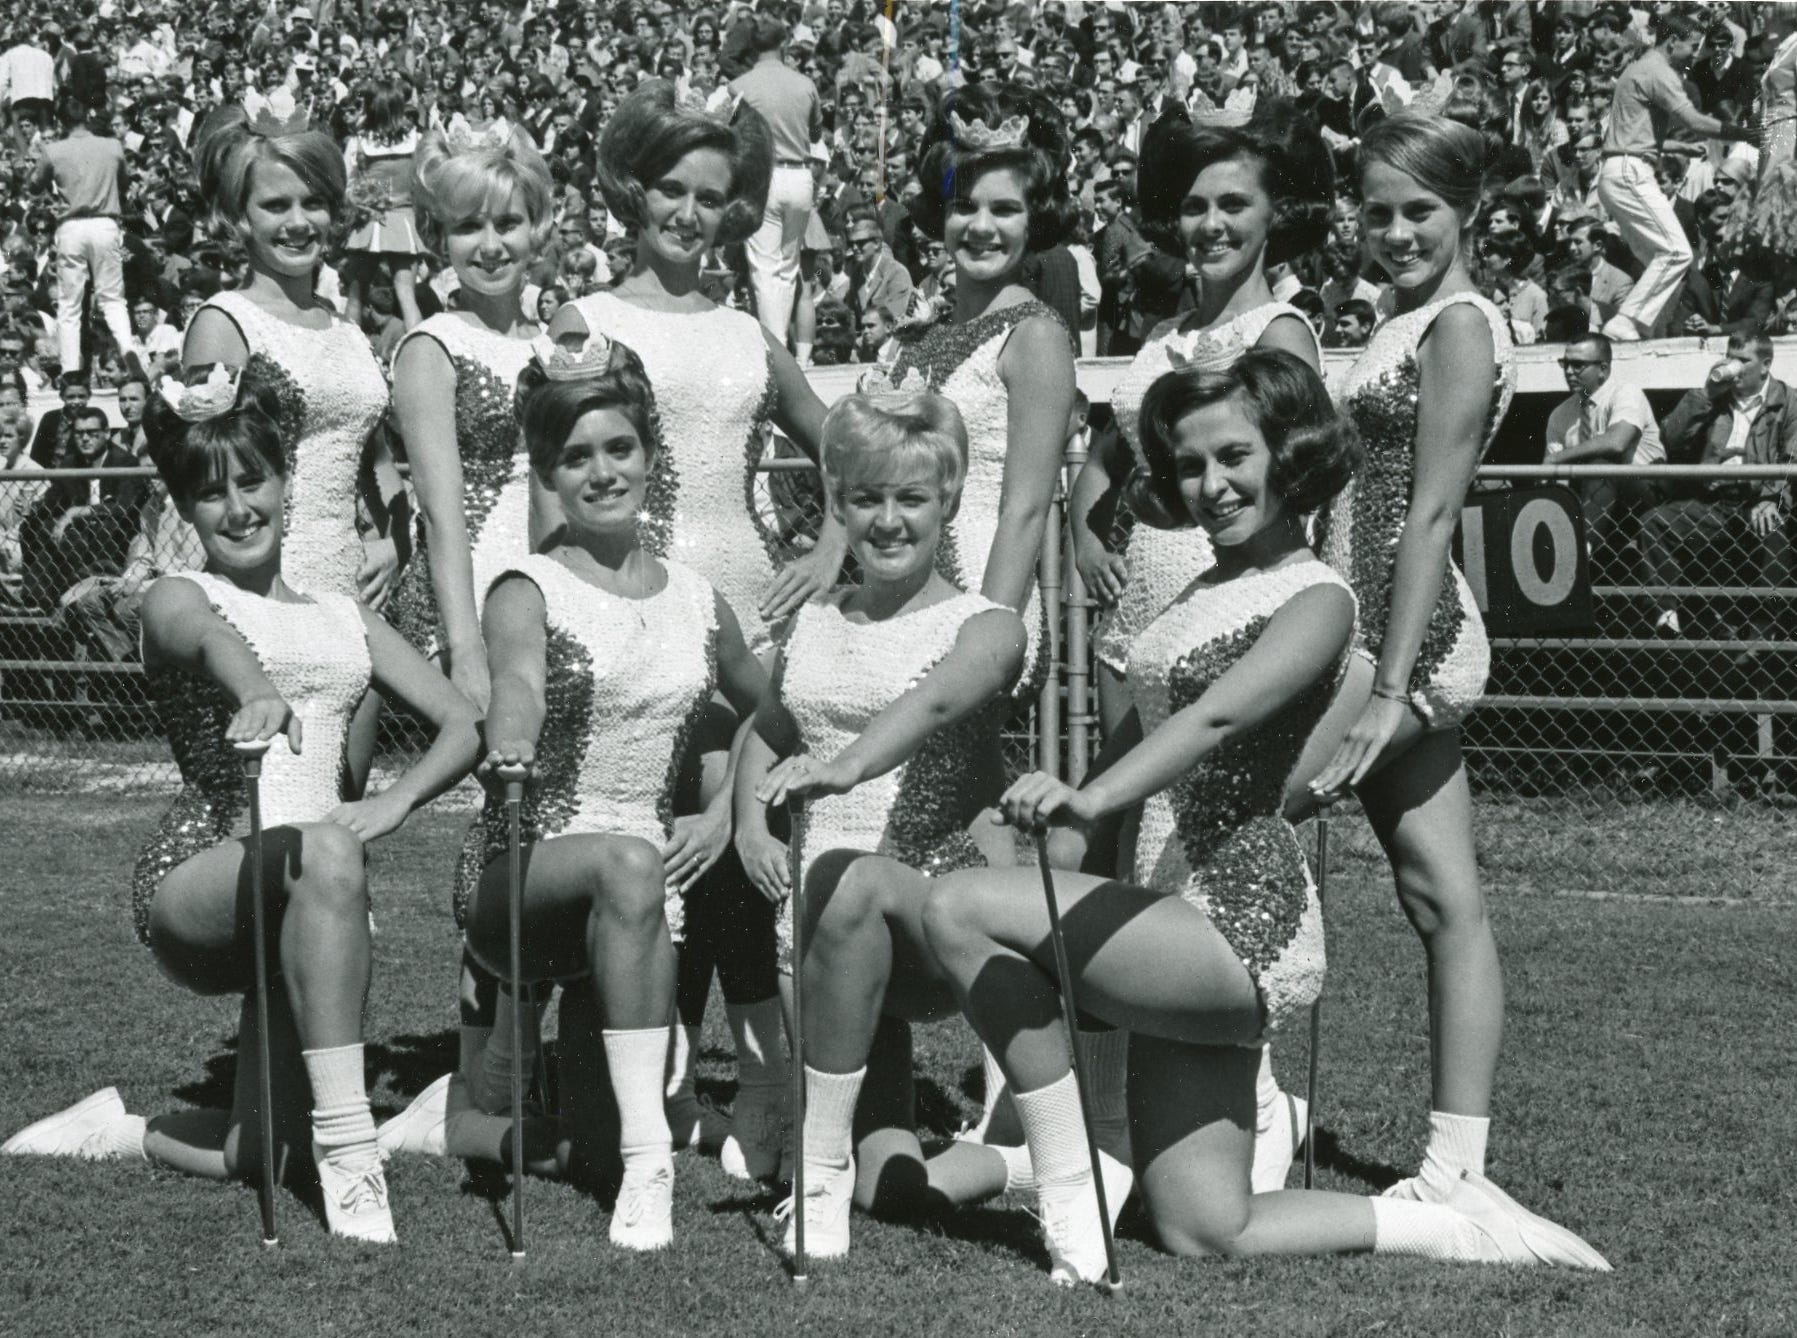 University of Tennessee majorettes, 1967: (front) Pete Payne, Becky Nanney, Elizabeth Sims, Elaine White; (back) Mary Luallen, Mary Carolyn Roper, Pam Bailey, head majorette Connie Phillips, Kathy Price and Annabell Agee.